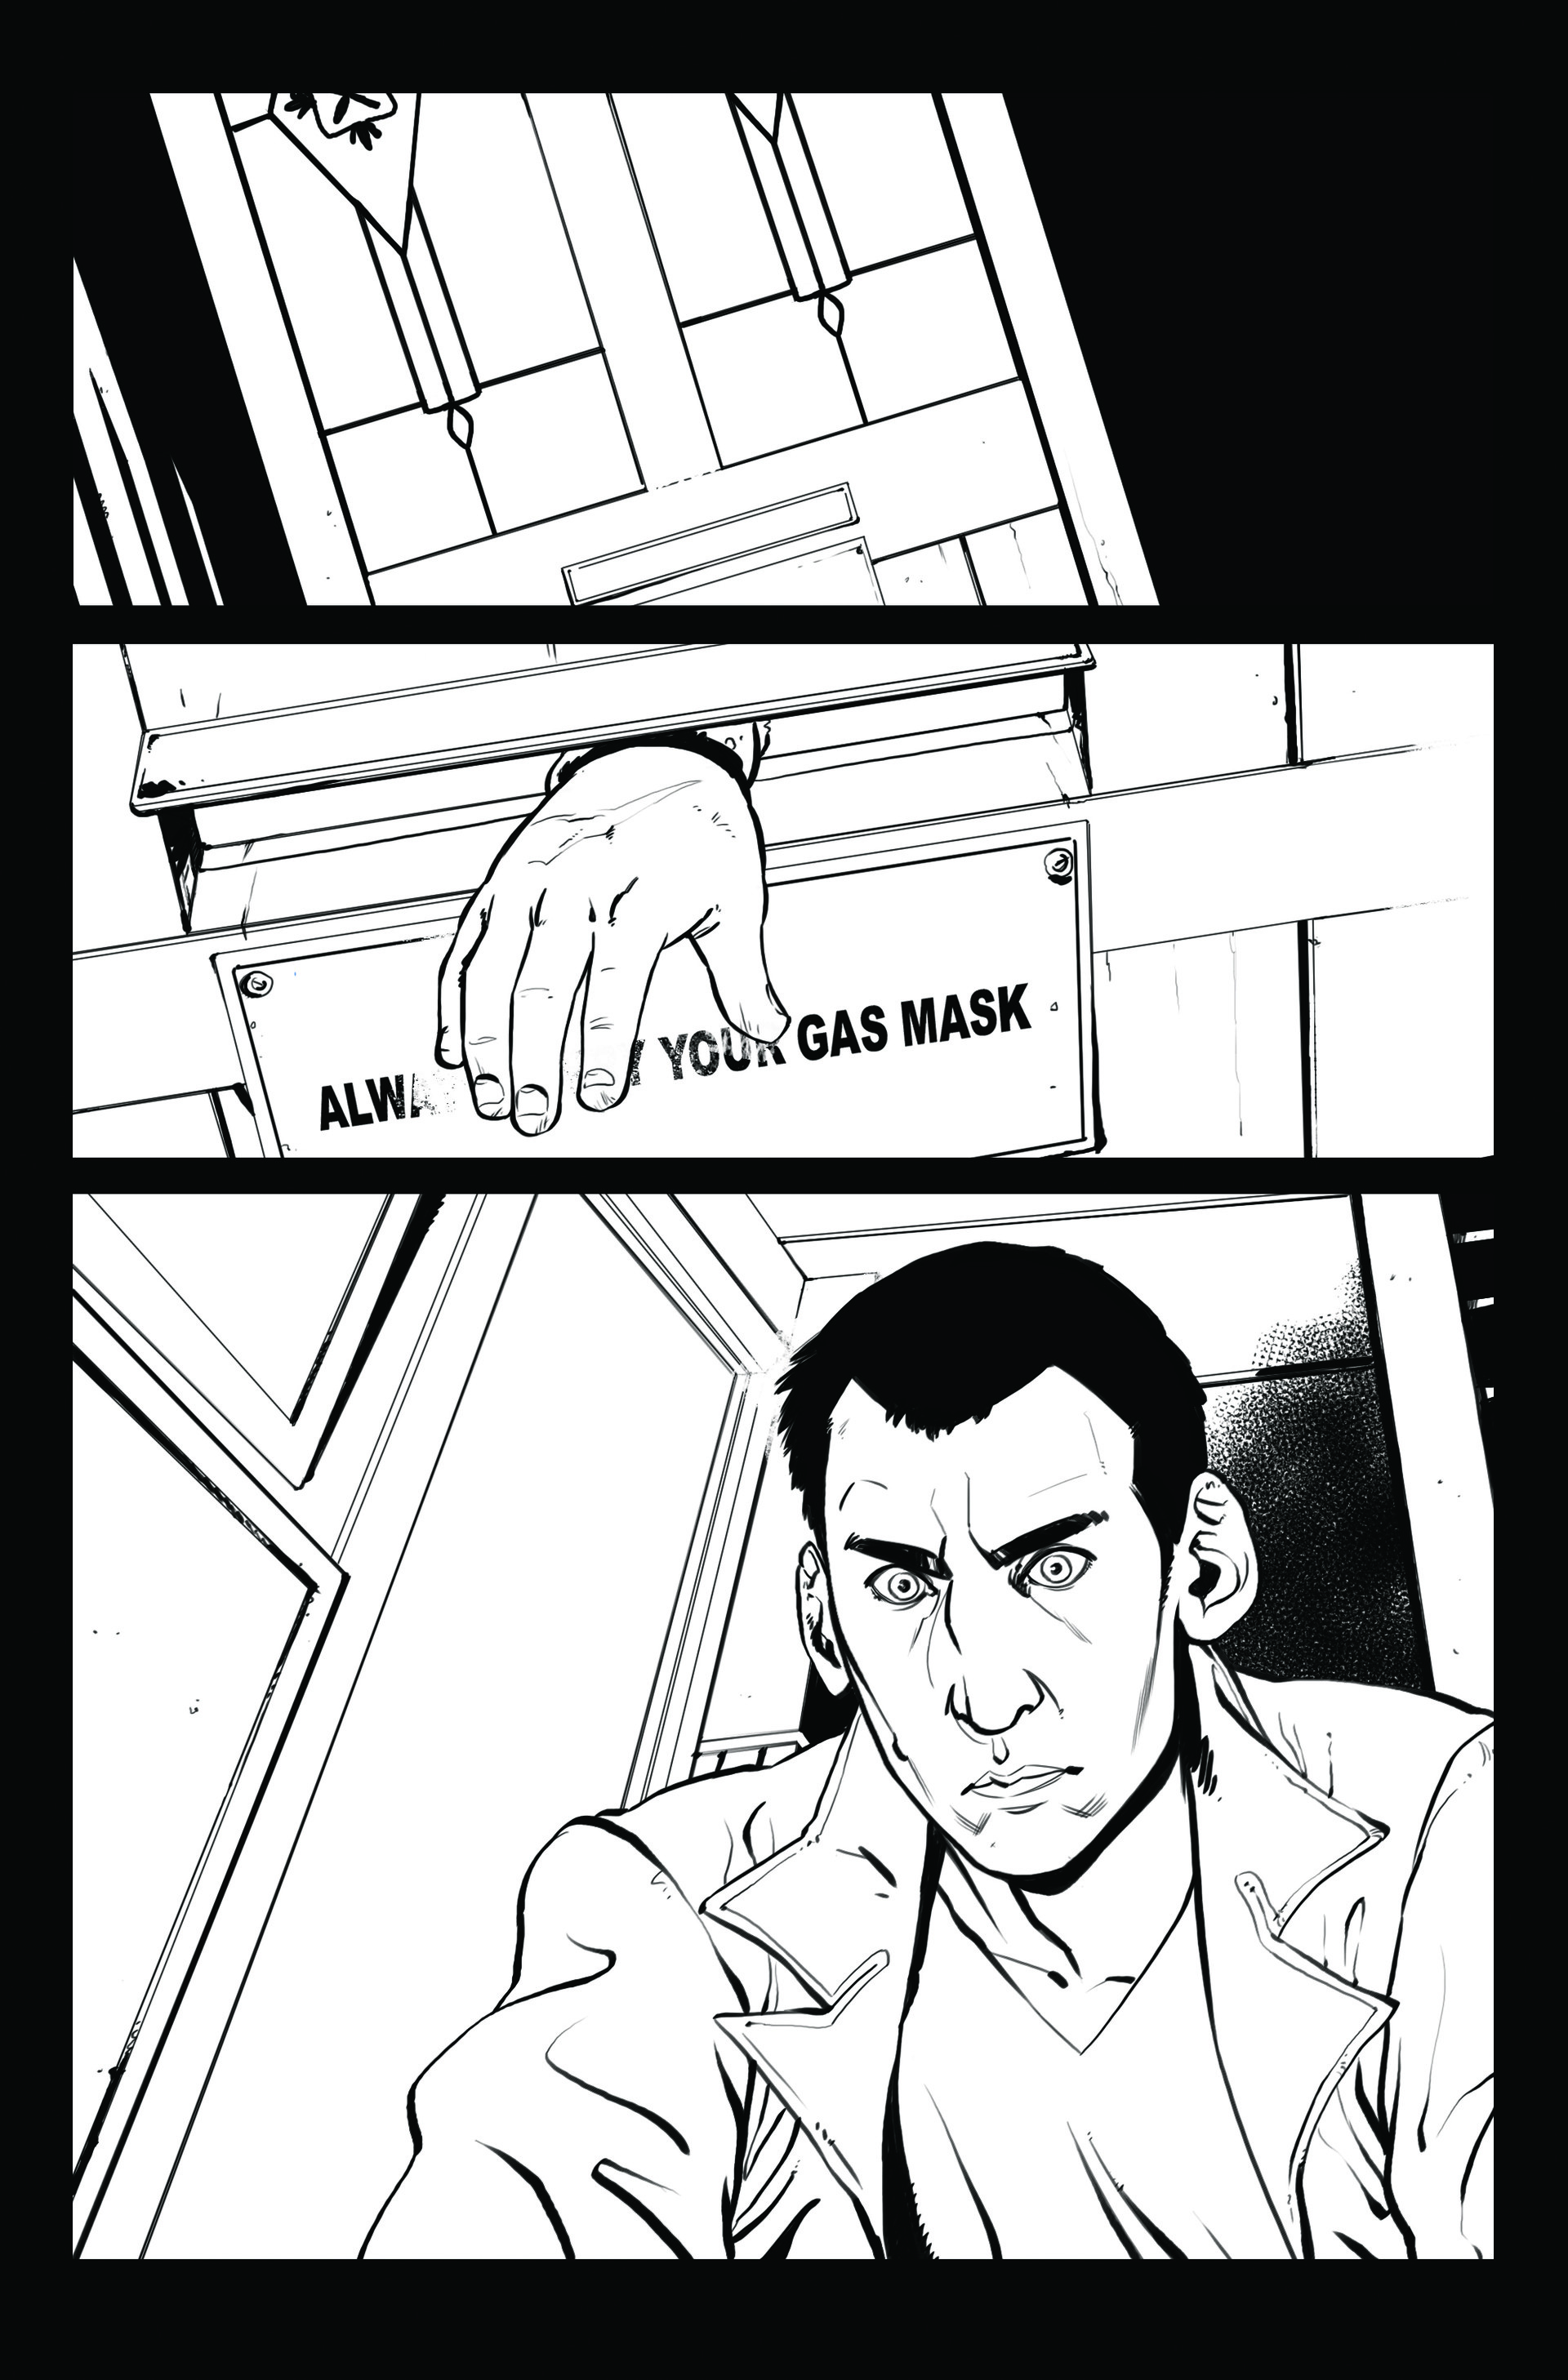 Claudia cocci doctor who page 04 line